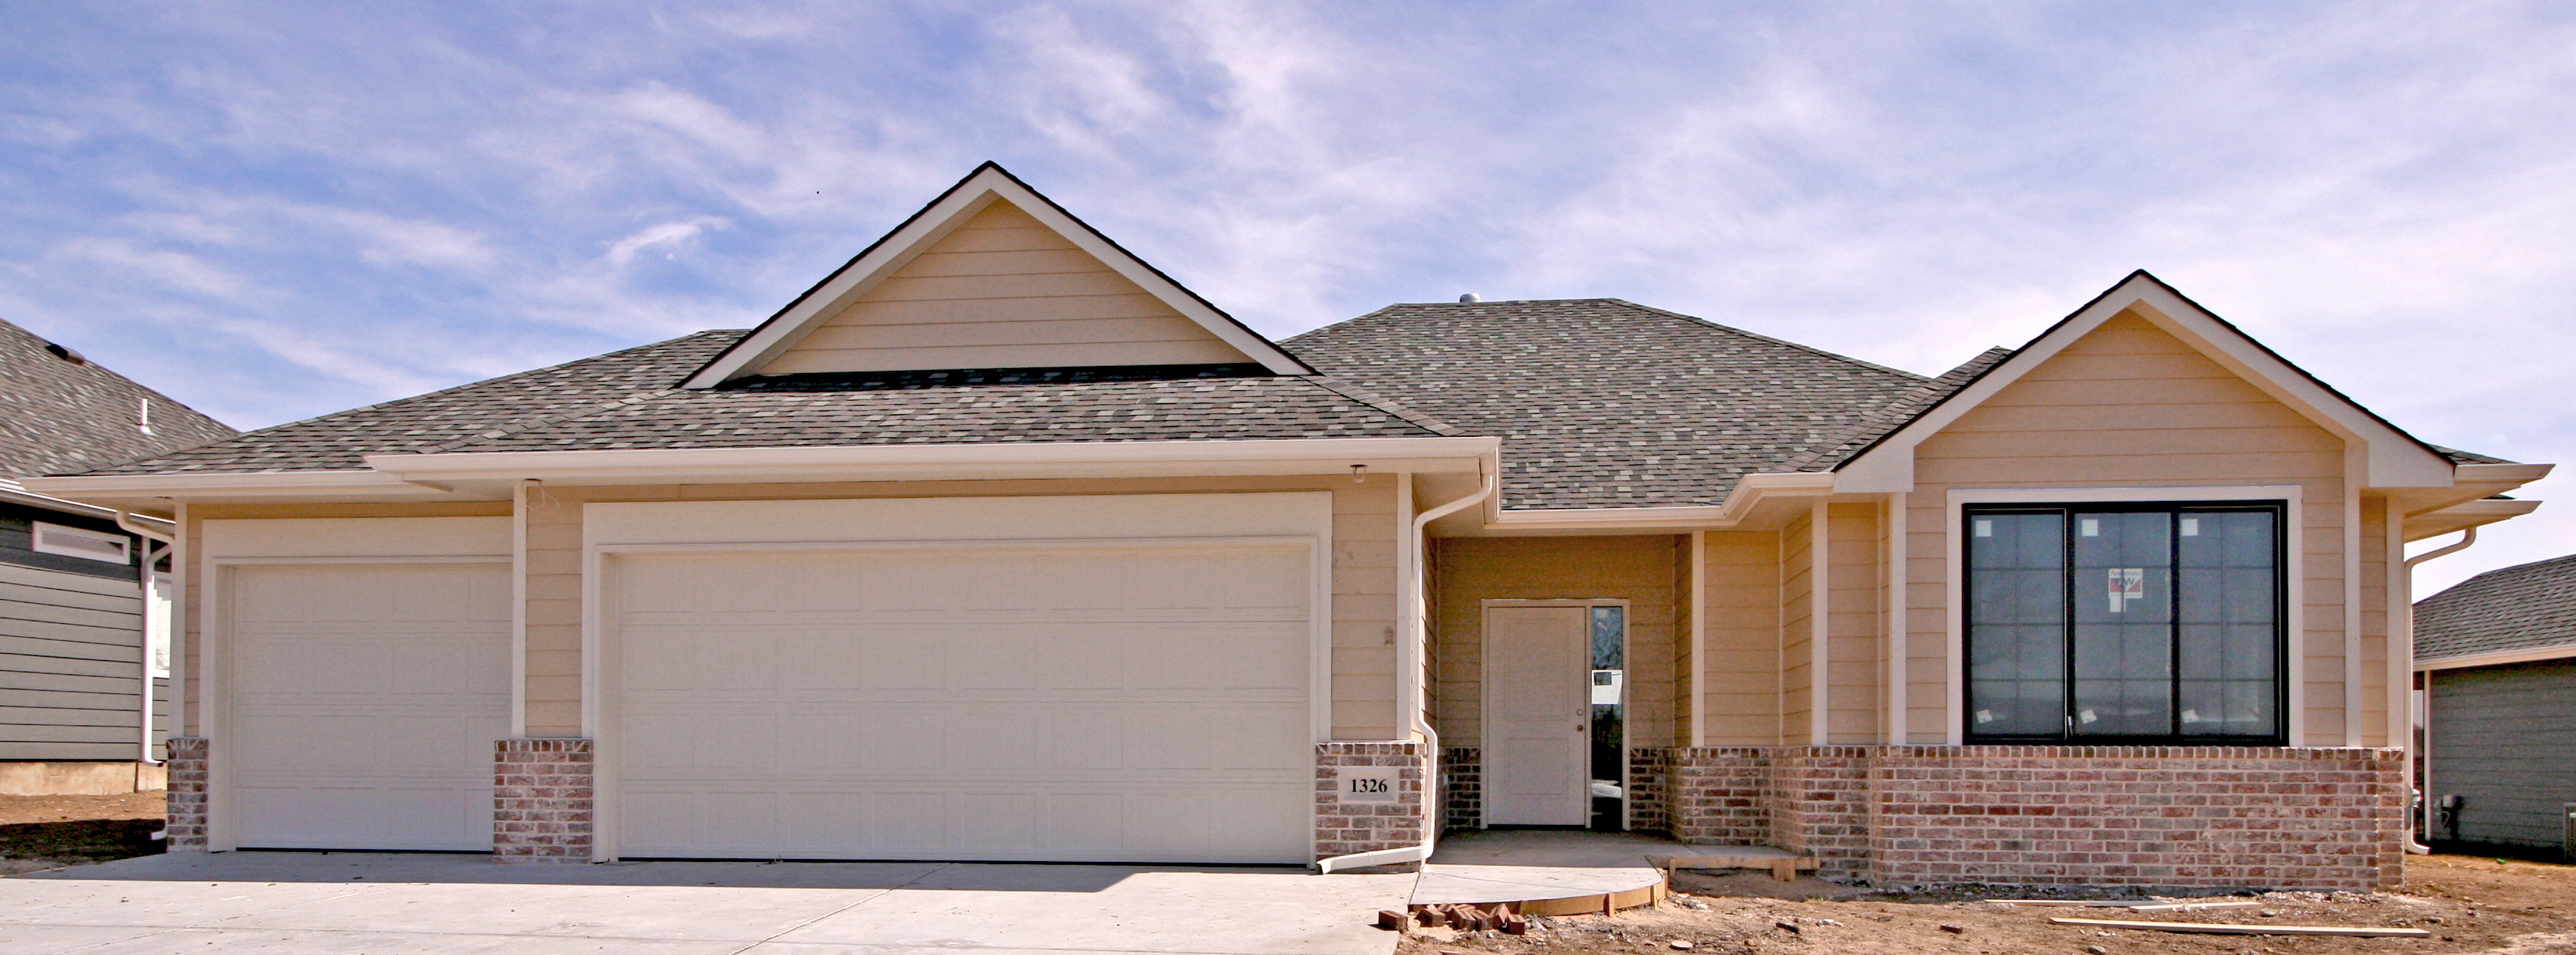 new home floor plans wichita ks home plan browse new home floor plans